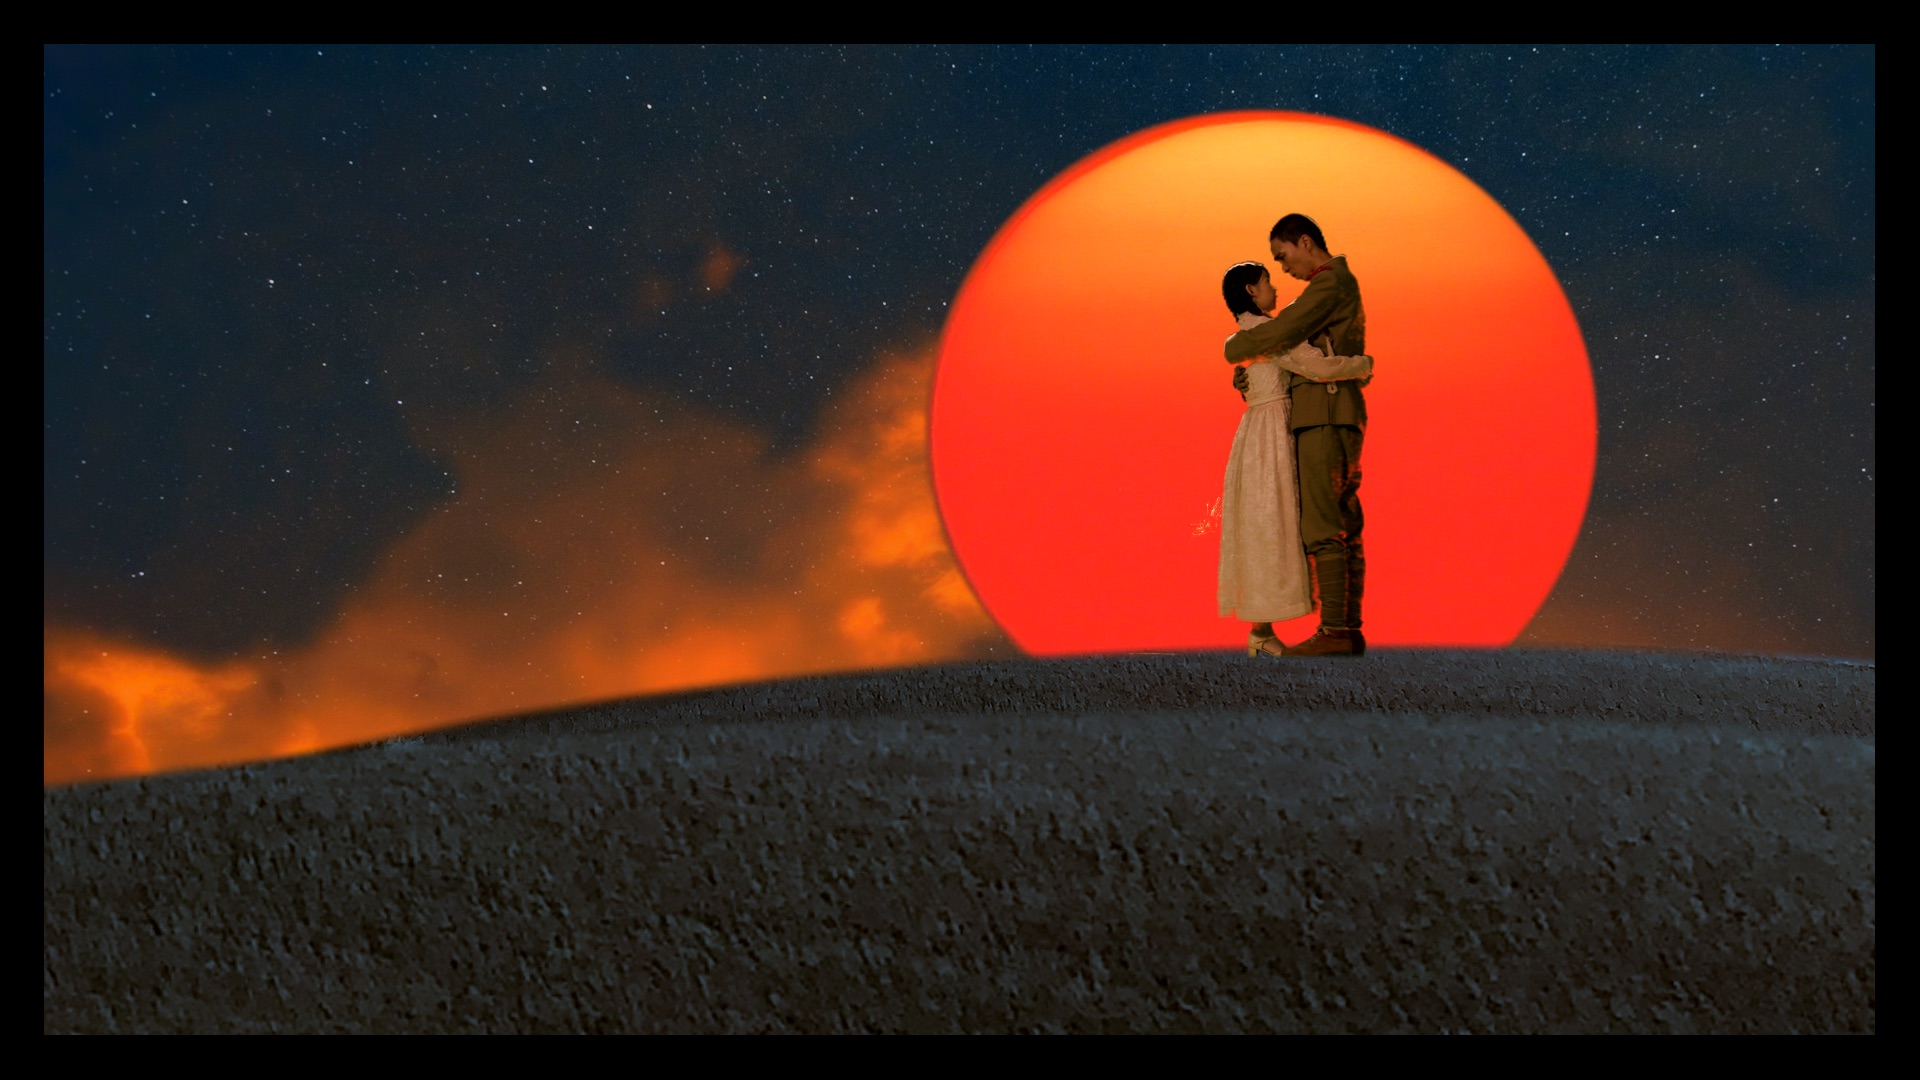 A couple standing on a hilltop and embracing, they are silhouetted in front of an orange sun rising or setting.